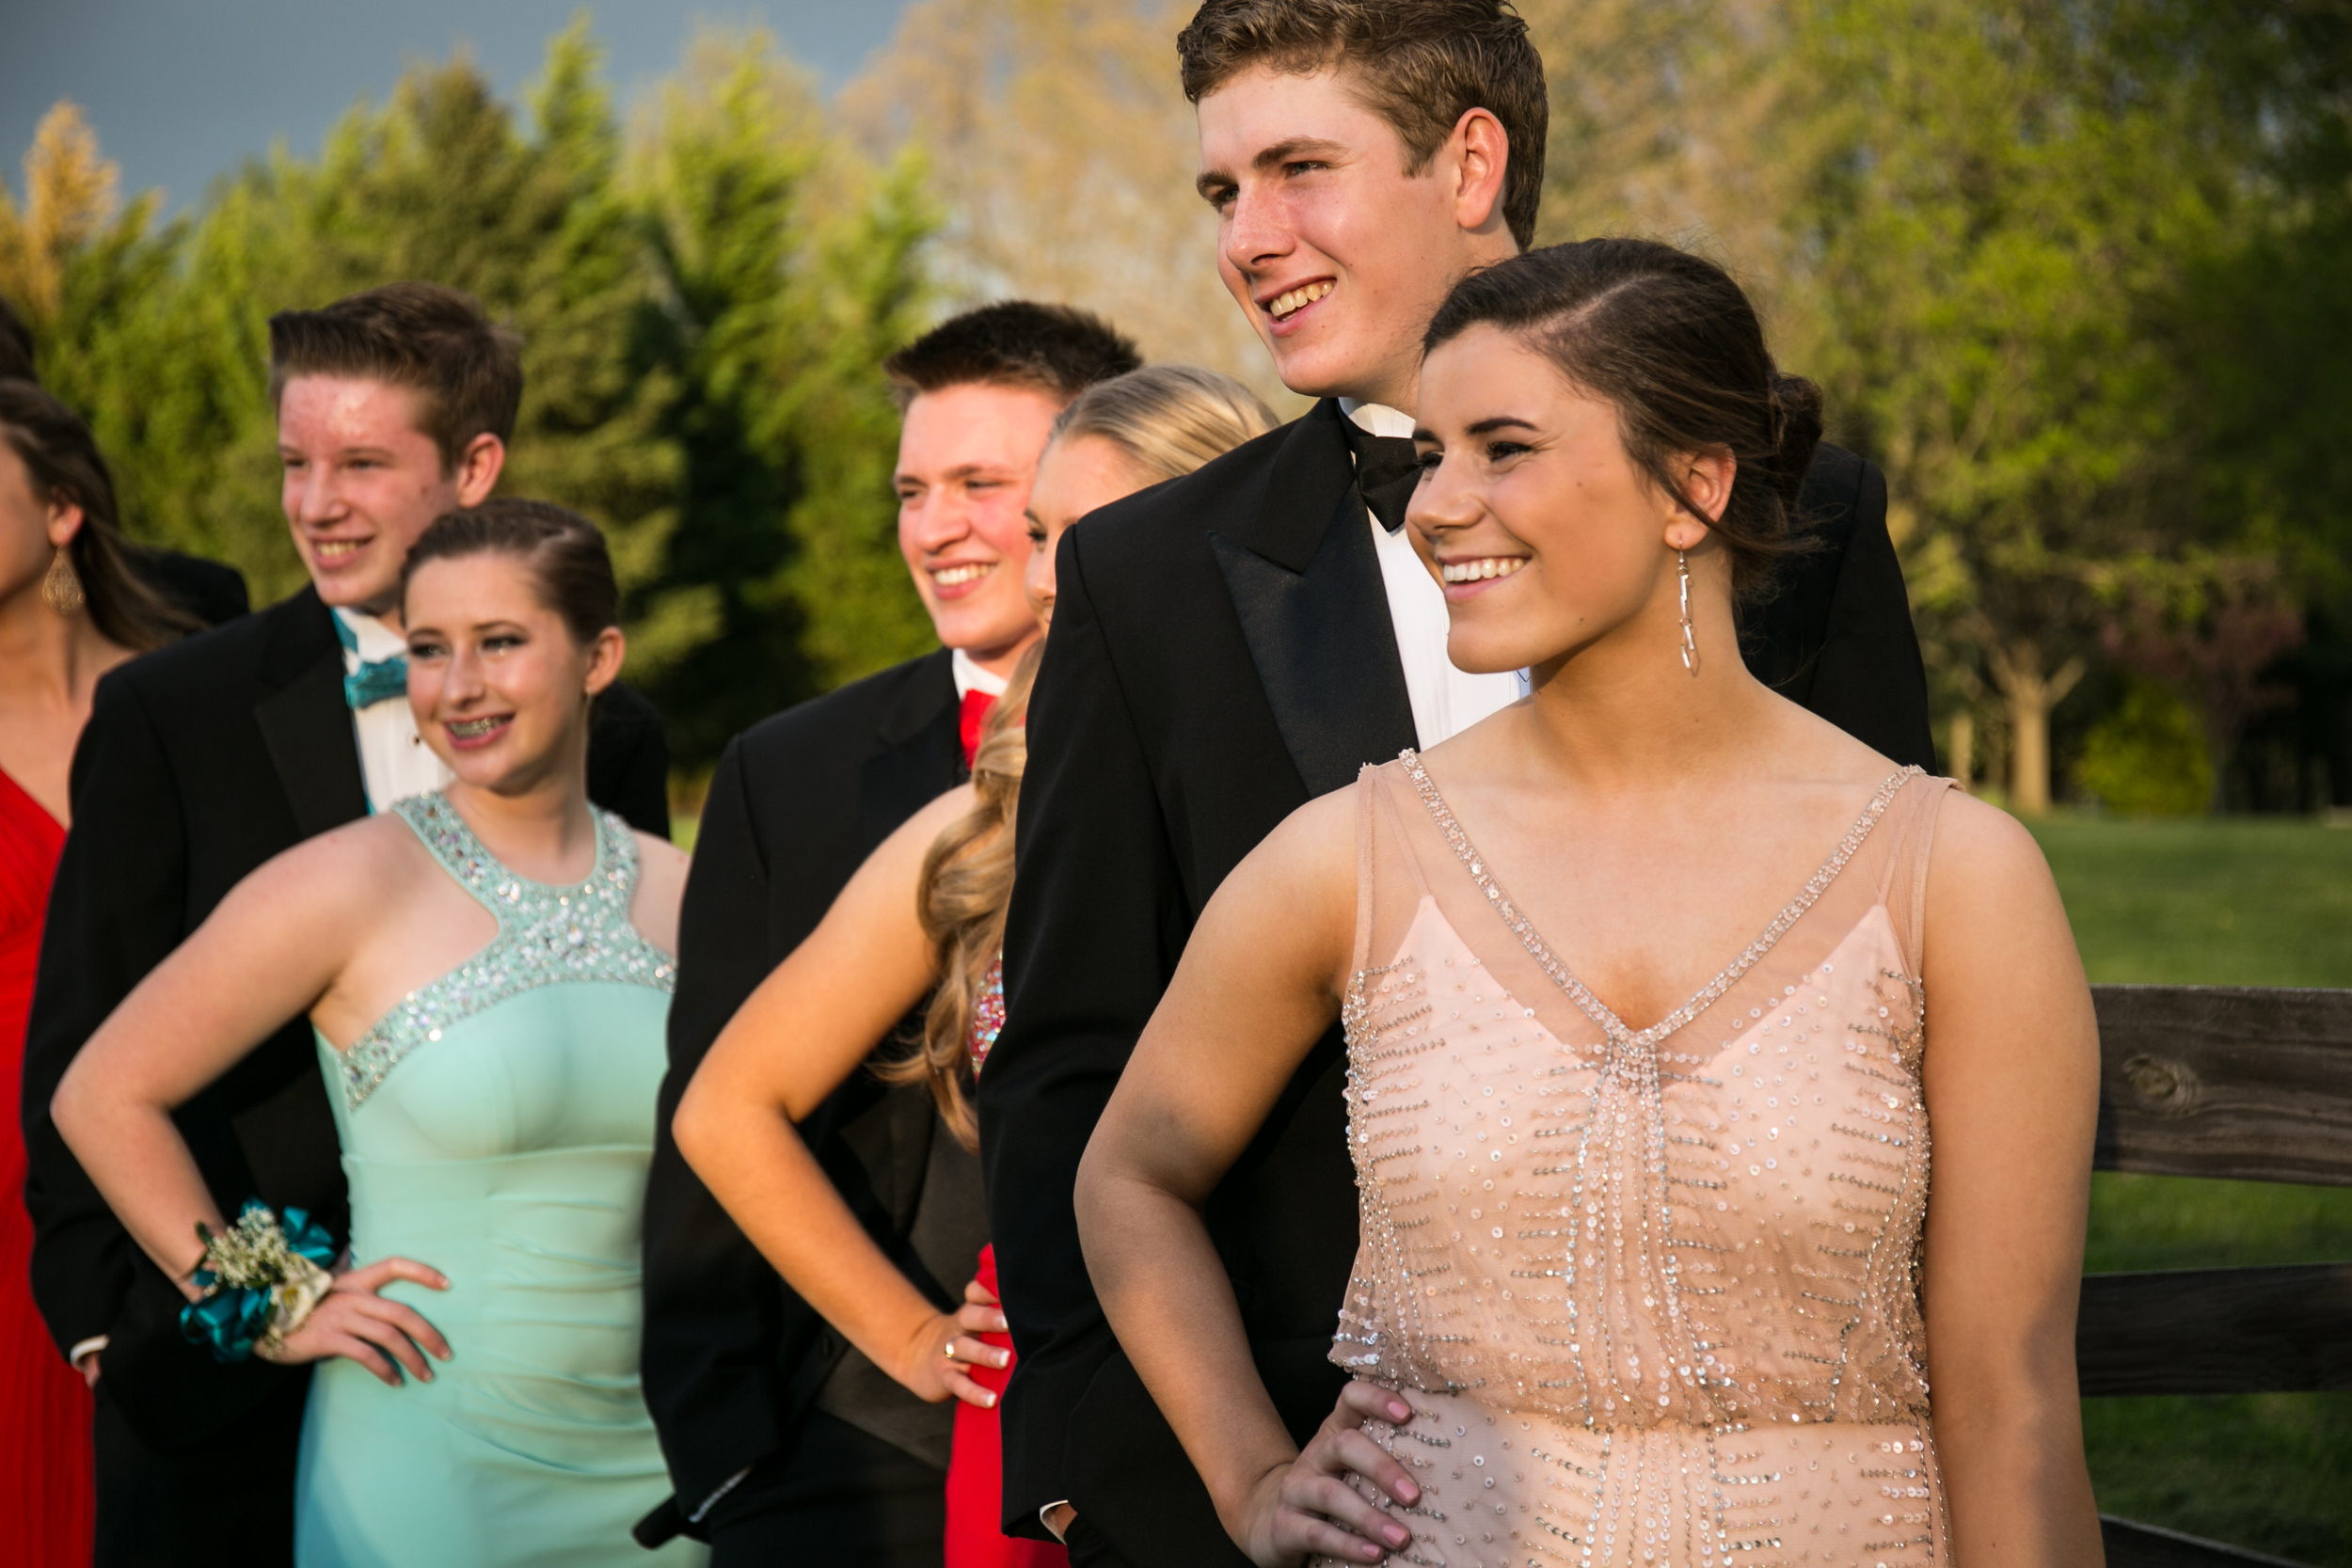 Mount-De-Sales-Pre-Prom-May-2014-41.jpg